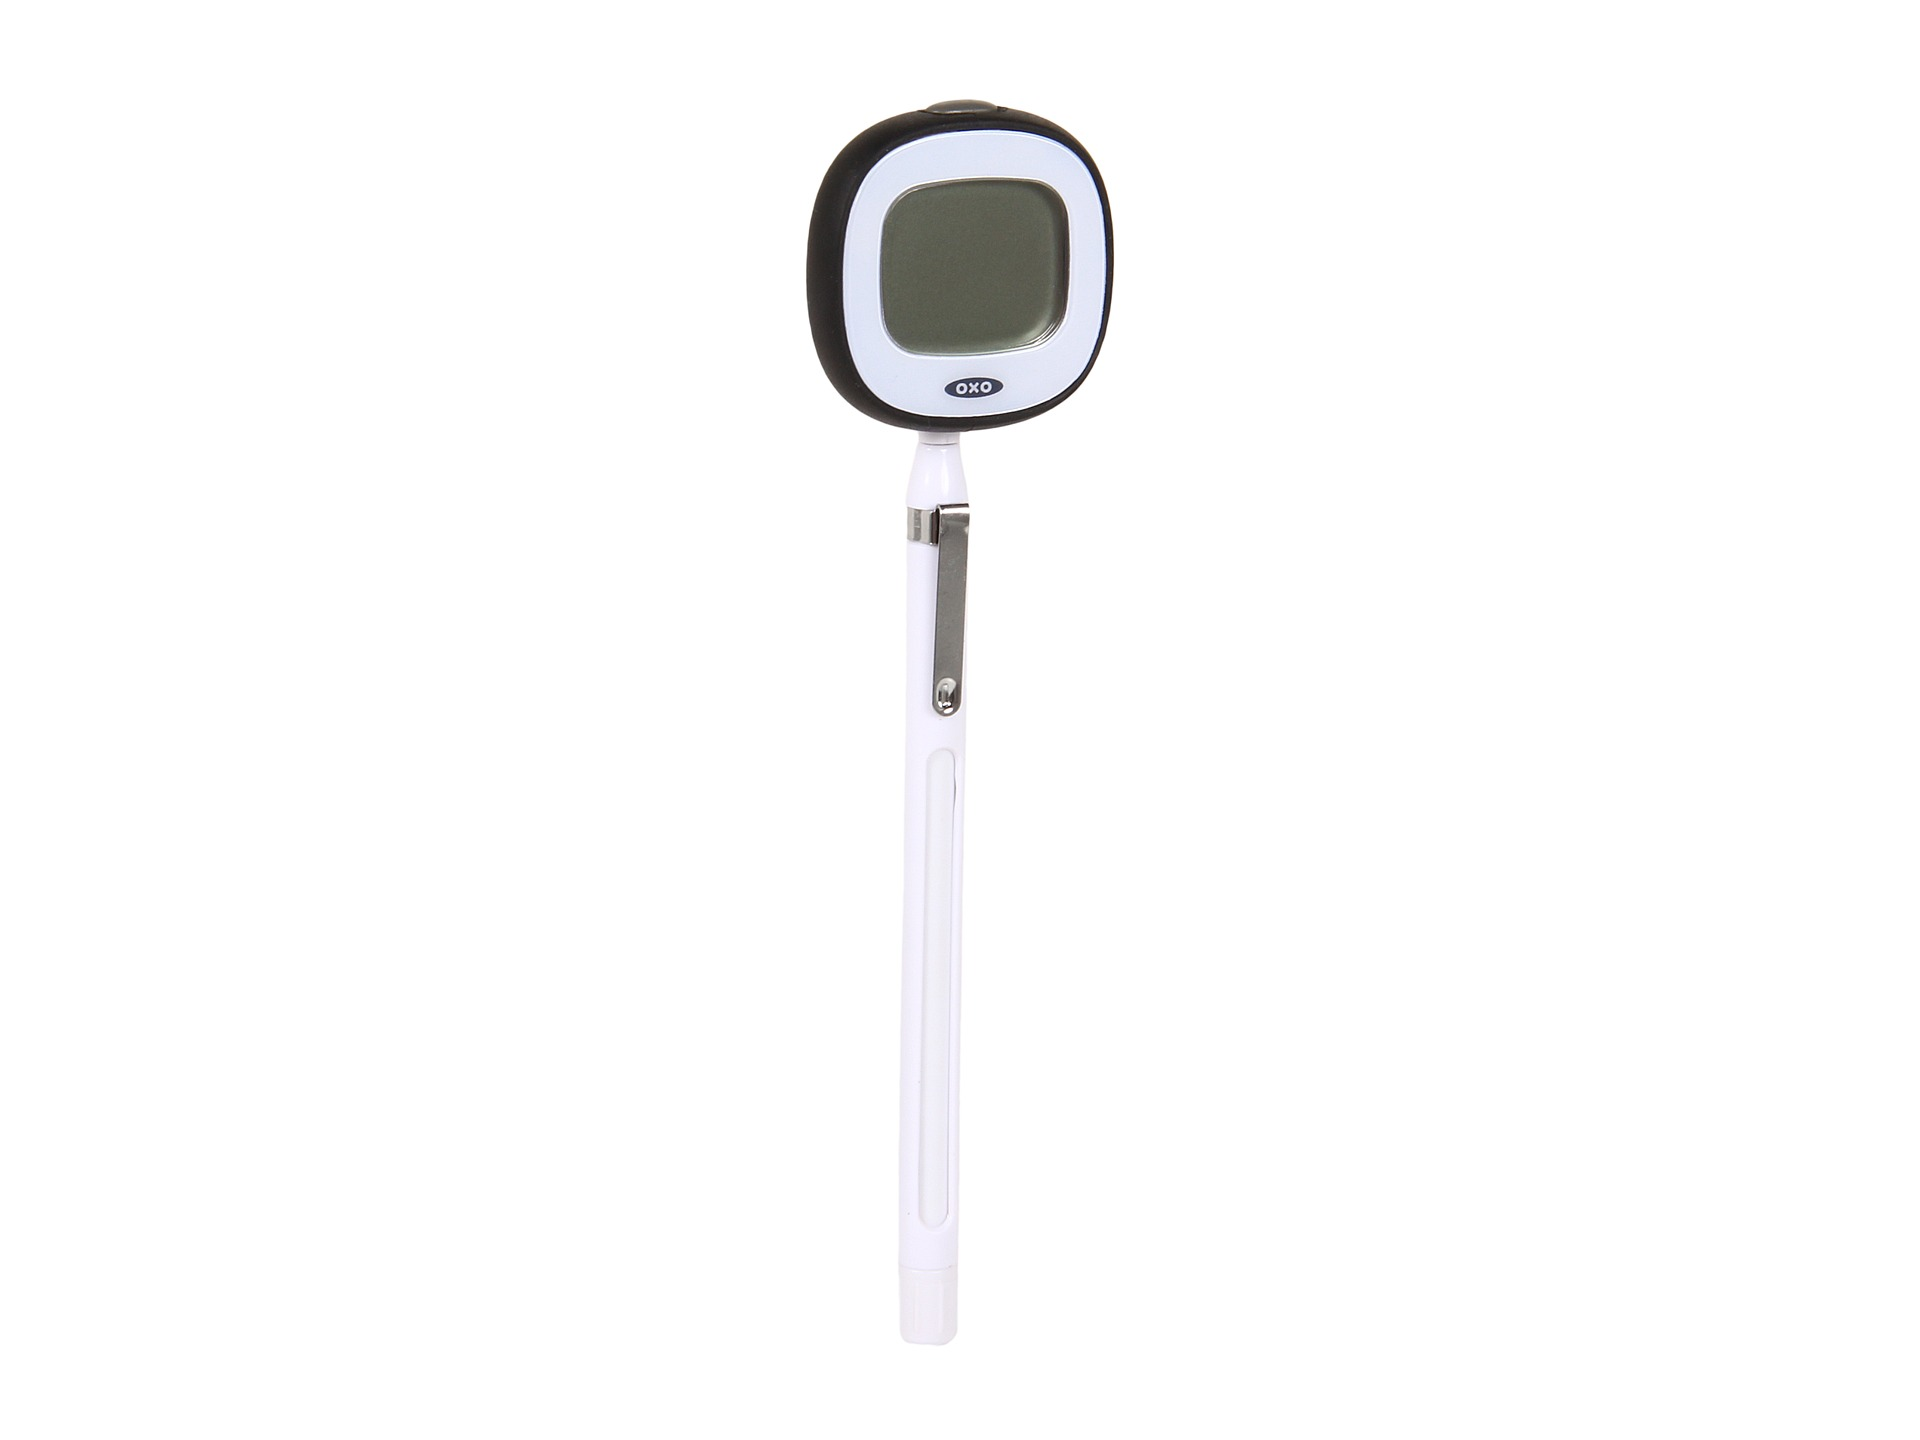 oxo instant read thermometer instructions